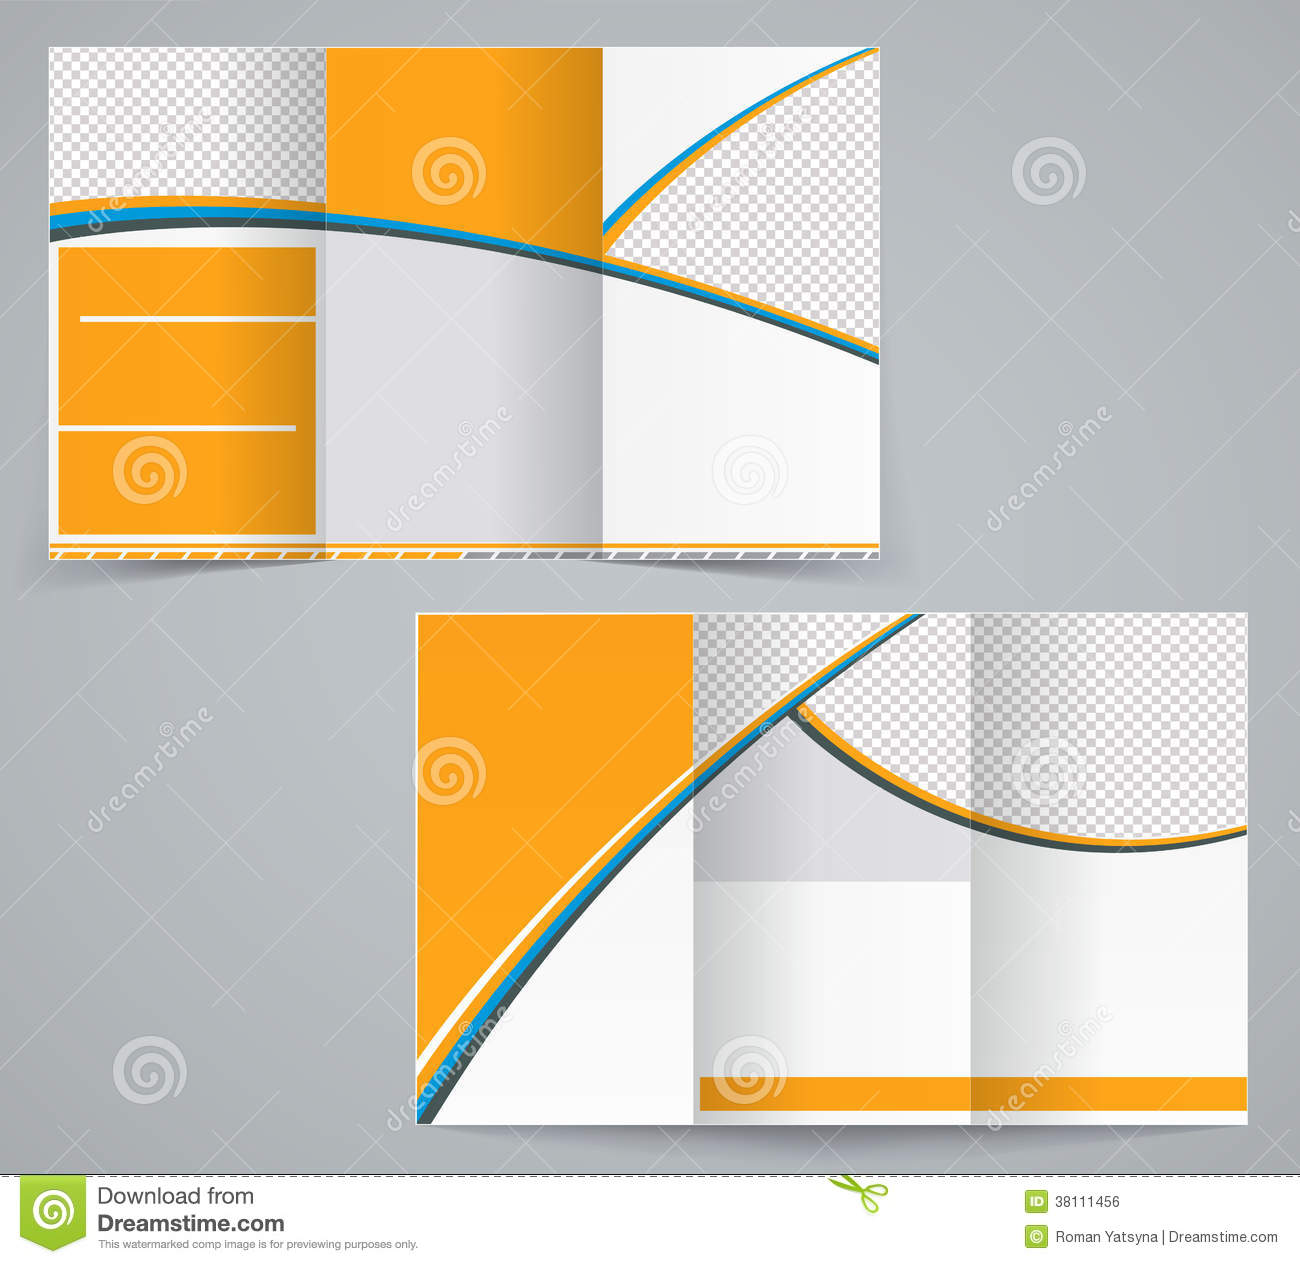 Tri fold business brochure template royalty free stock for Template brochure